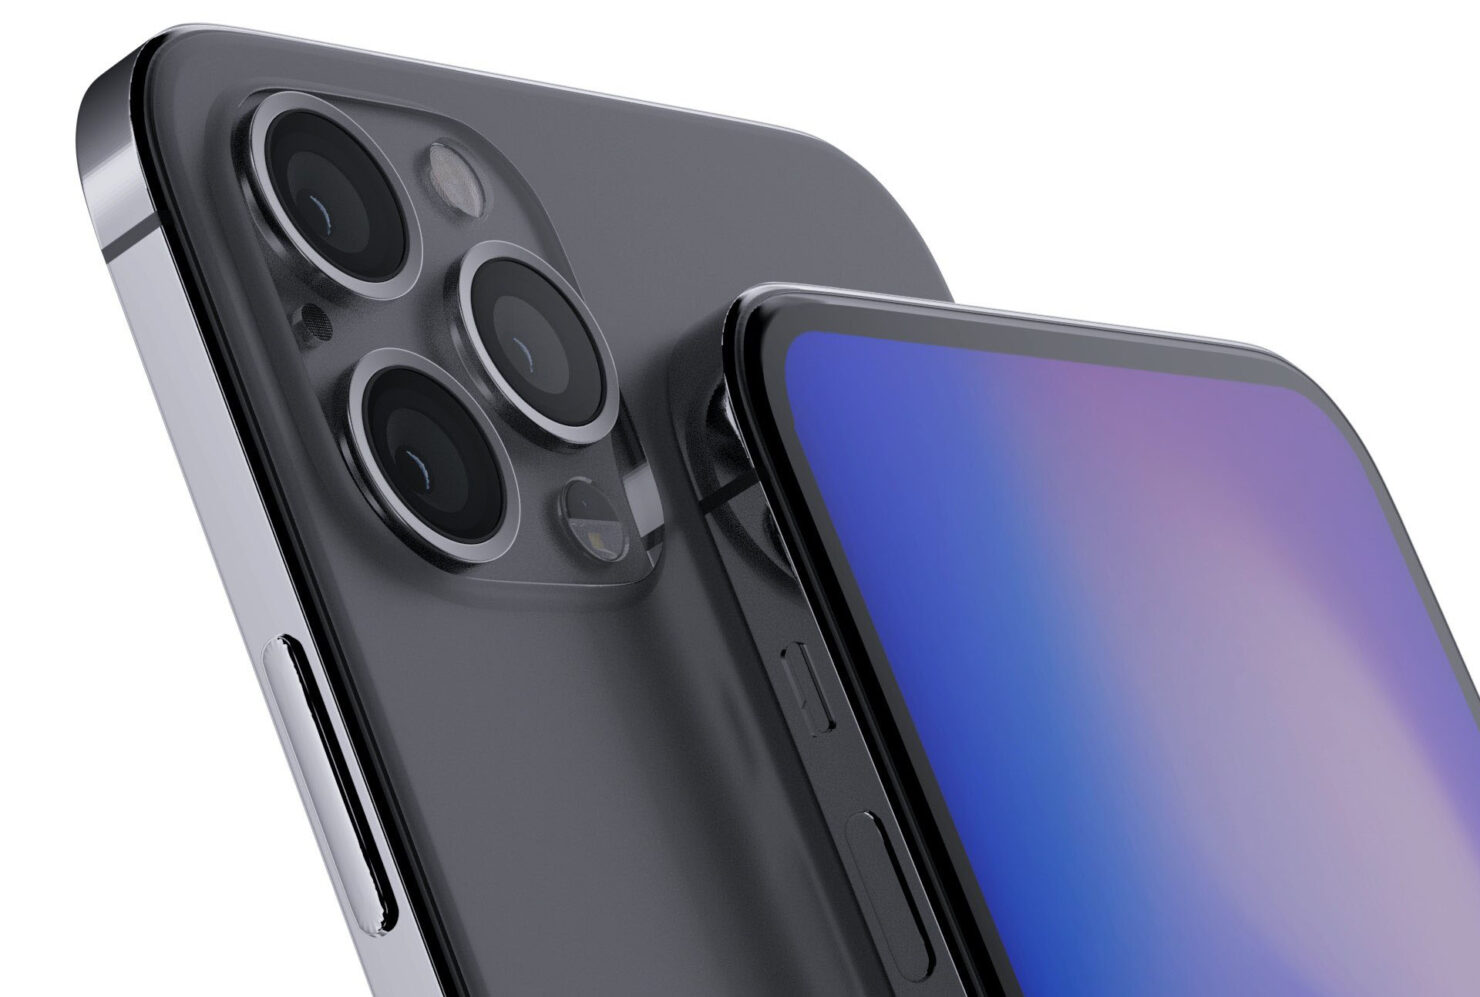 iPhone 12 Pro Camera to Include a Time-of-Flight Rear Unit for Mapping 3D Environments